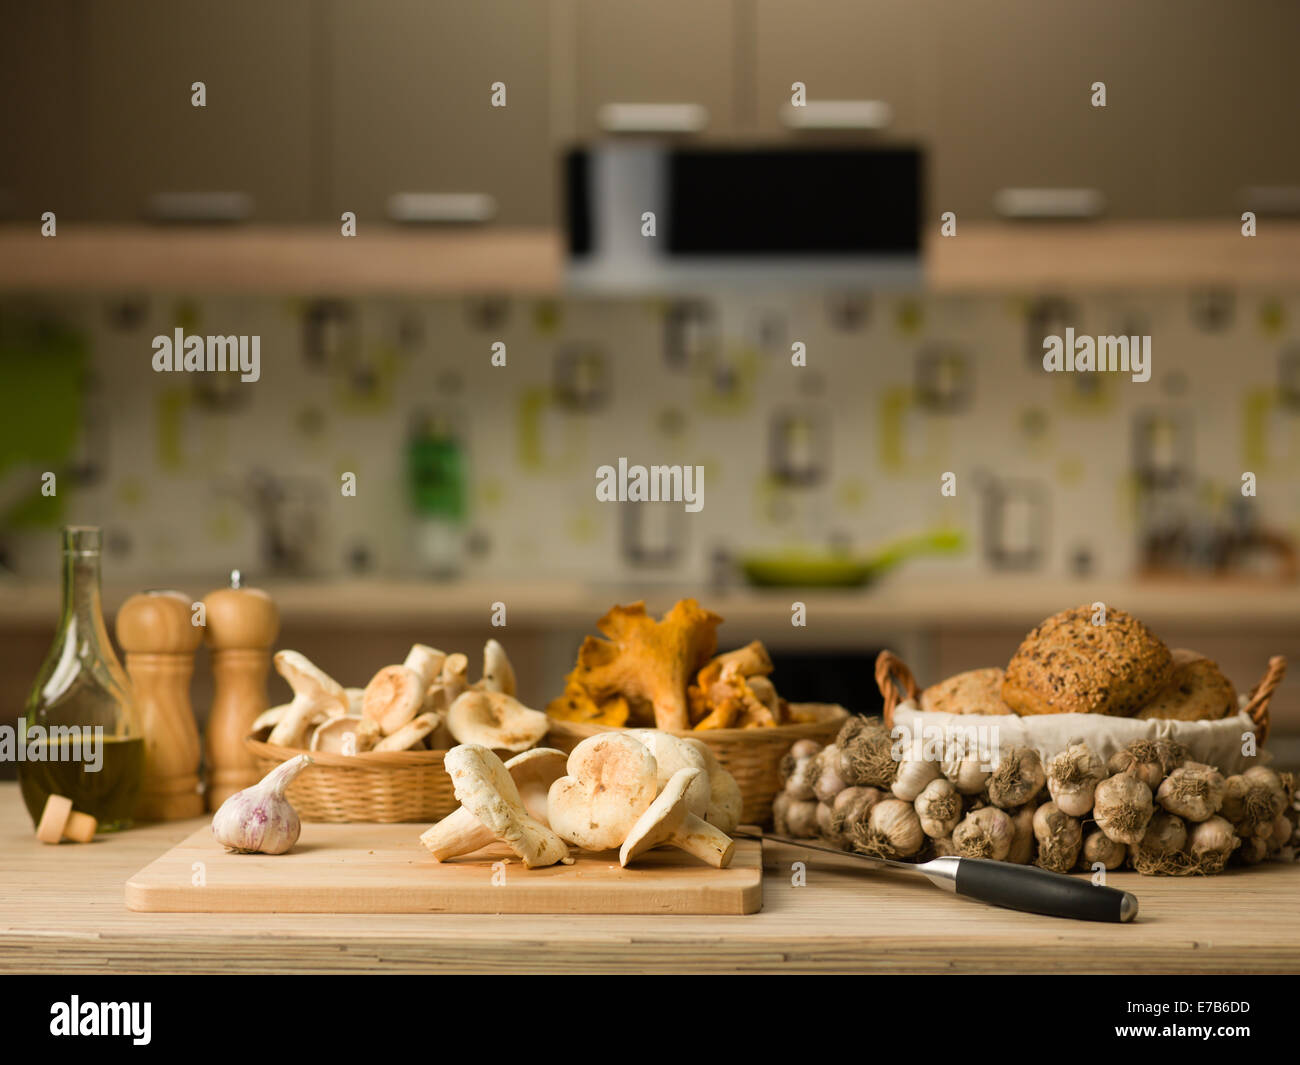 mushrooms and garlic on chopping board and baskets on table, kitchen still life - Stock Image